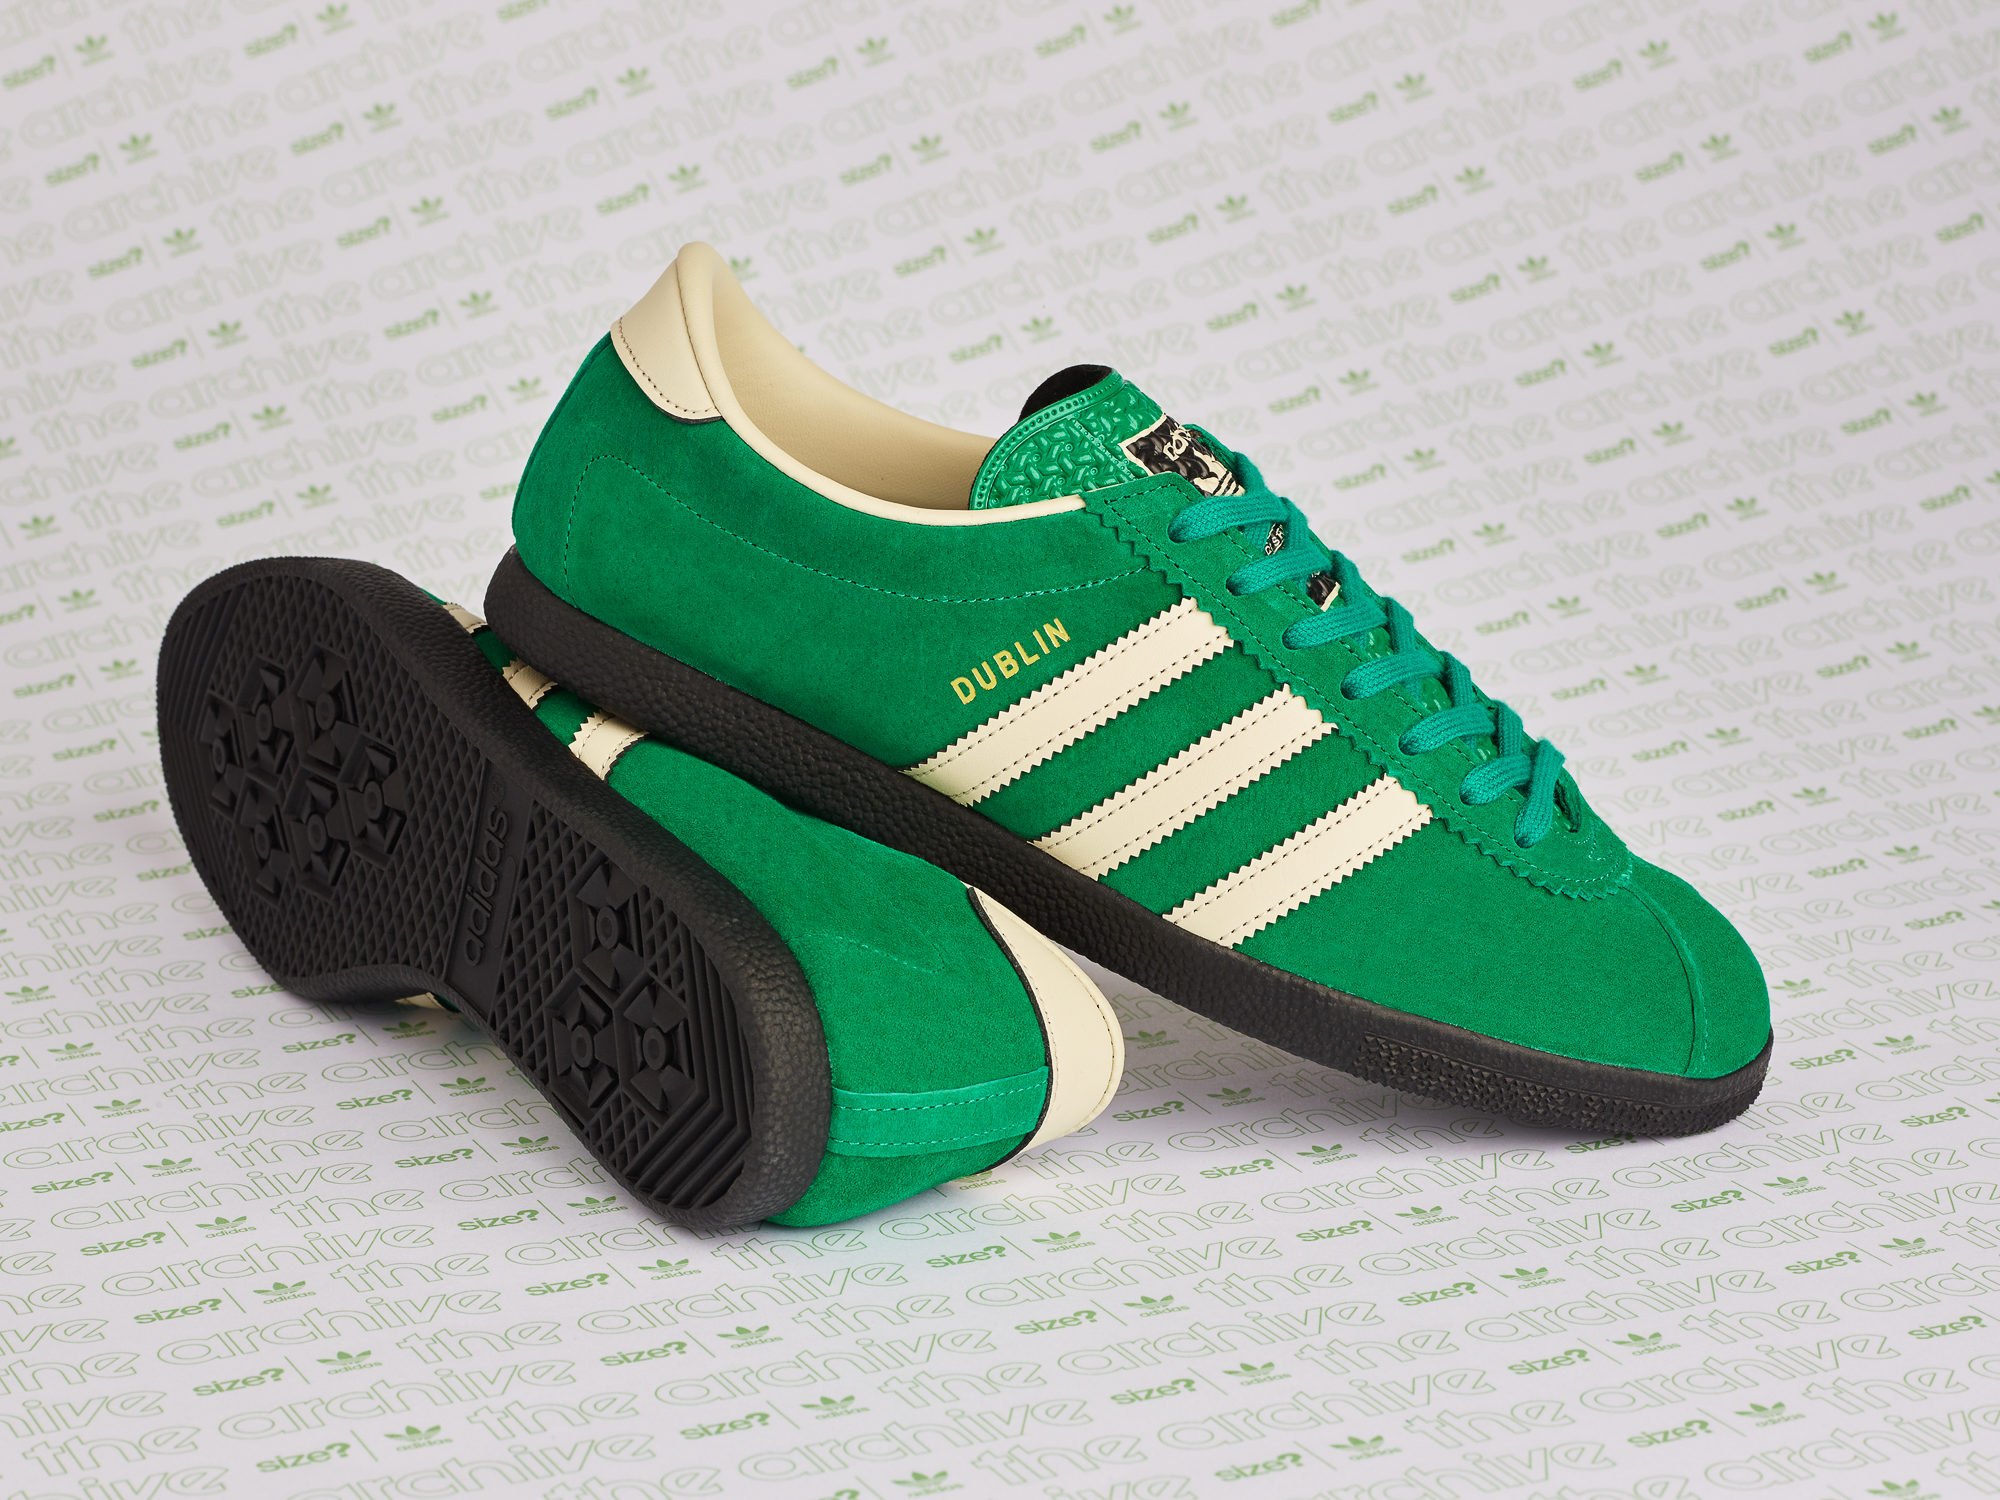 adidas dublin shoes